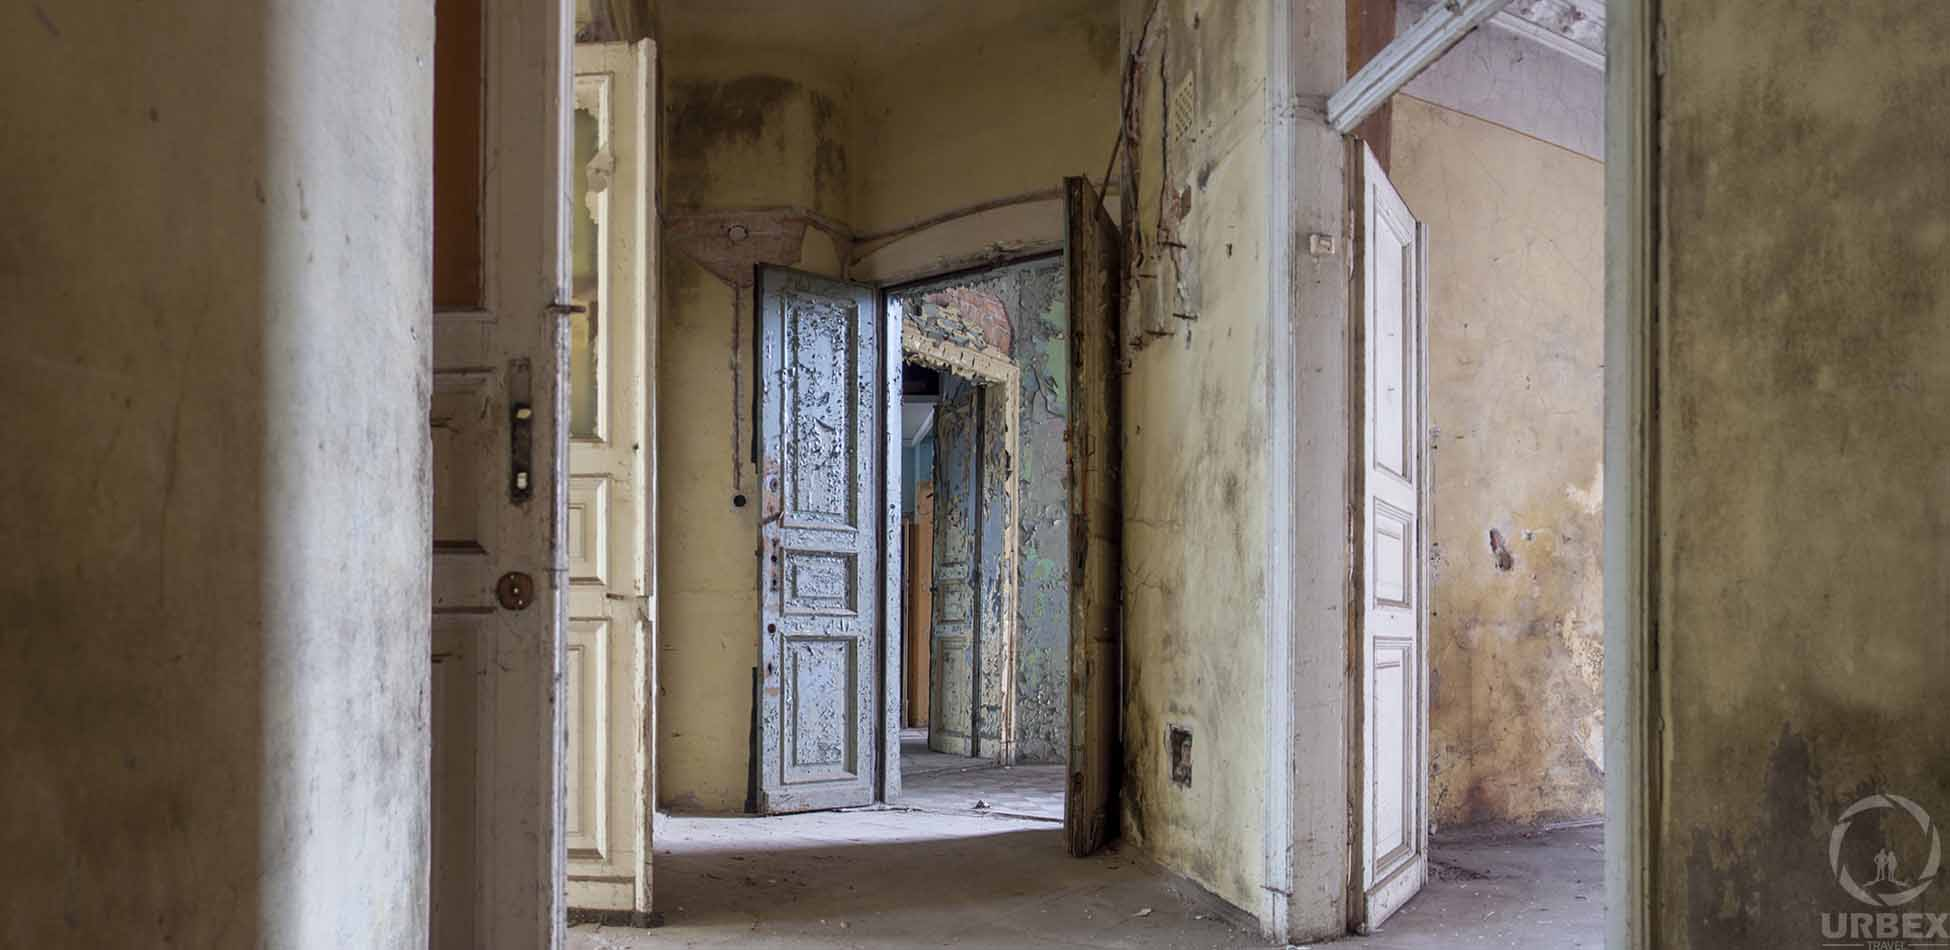 A Lot Of Doors in Abandoned Tenement House